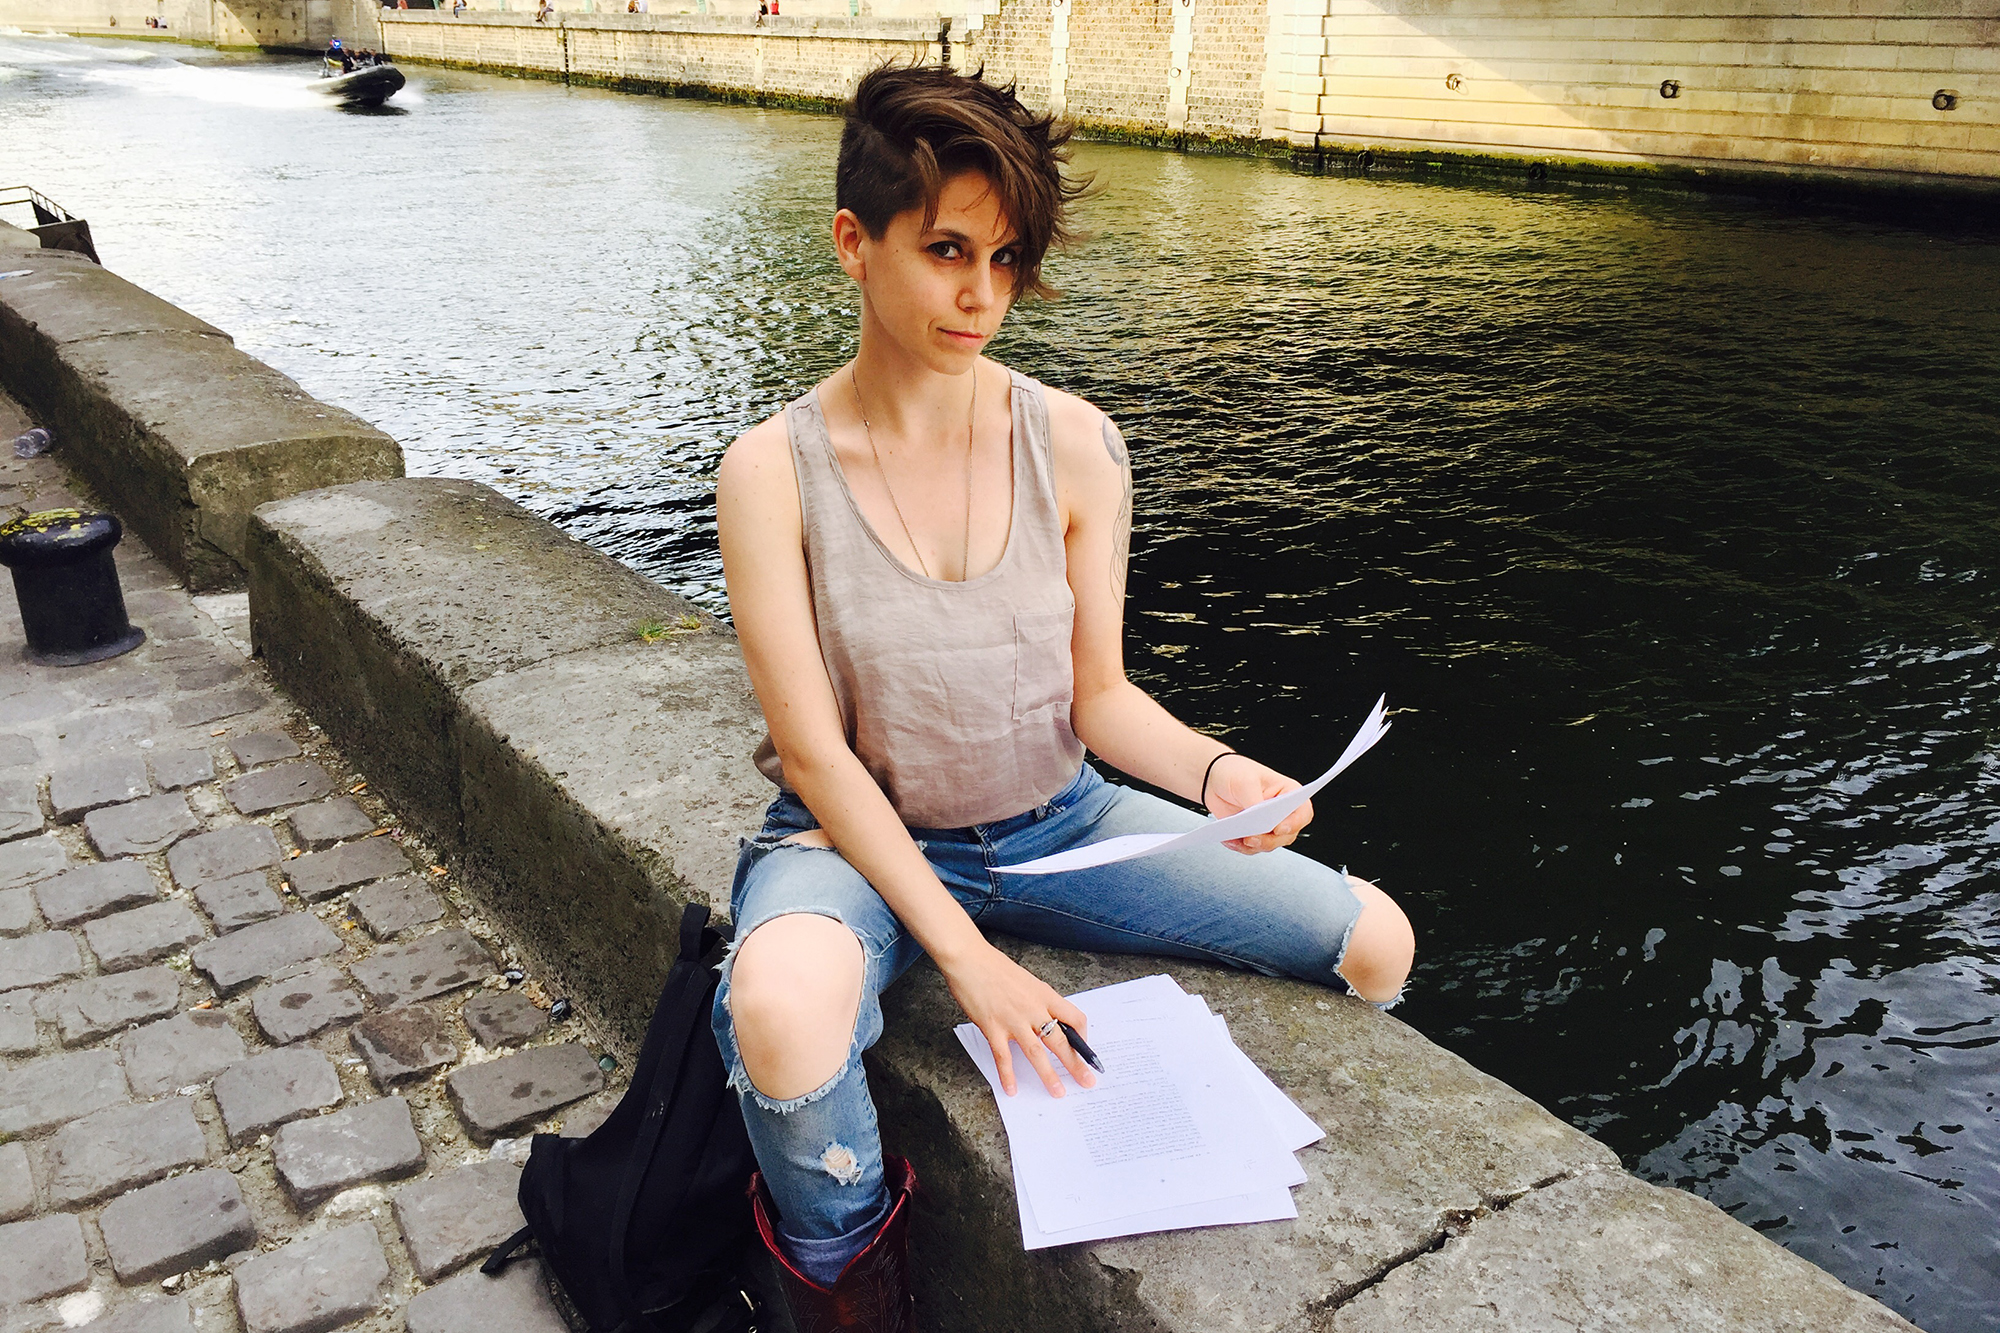 University of Iowa alumna Jen Silverman sit on the banks of a river with papers in hand and in front of her